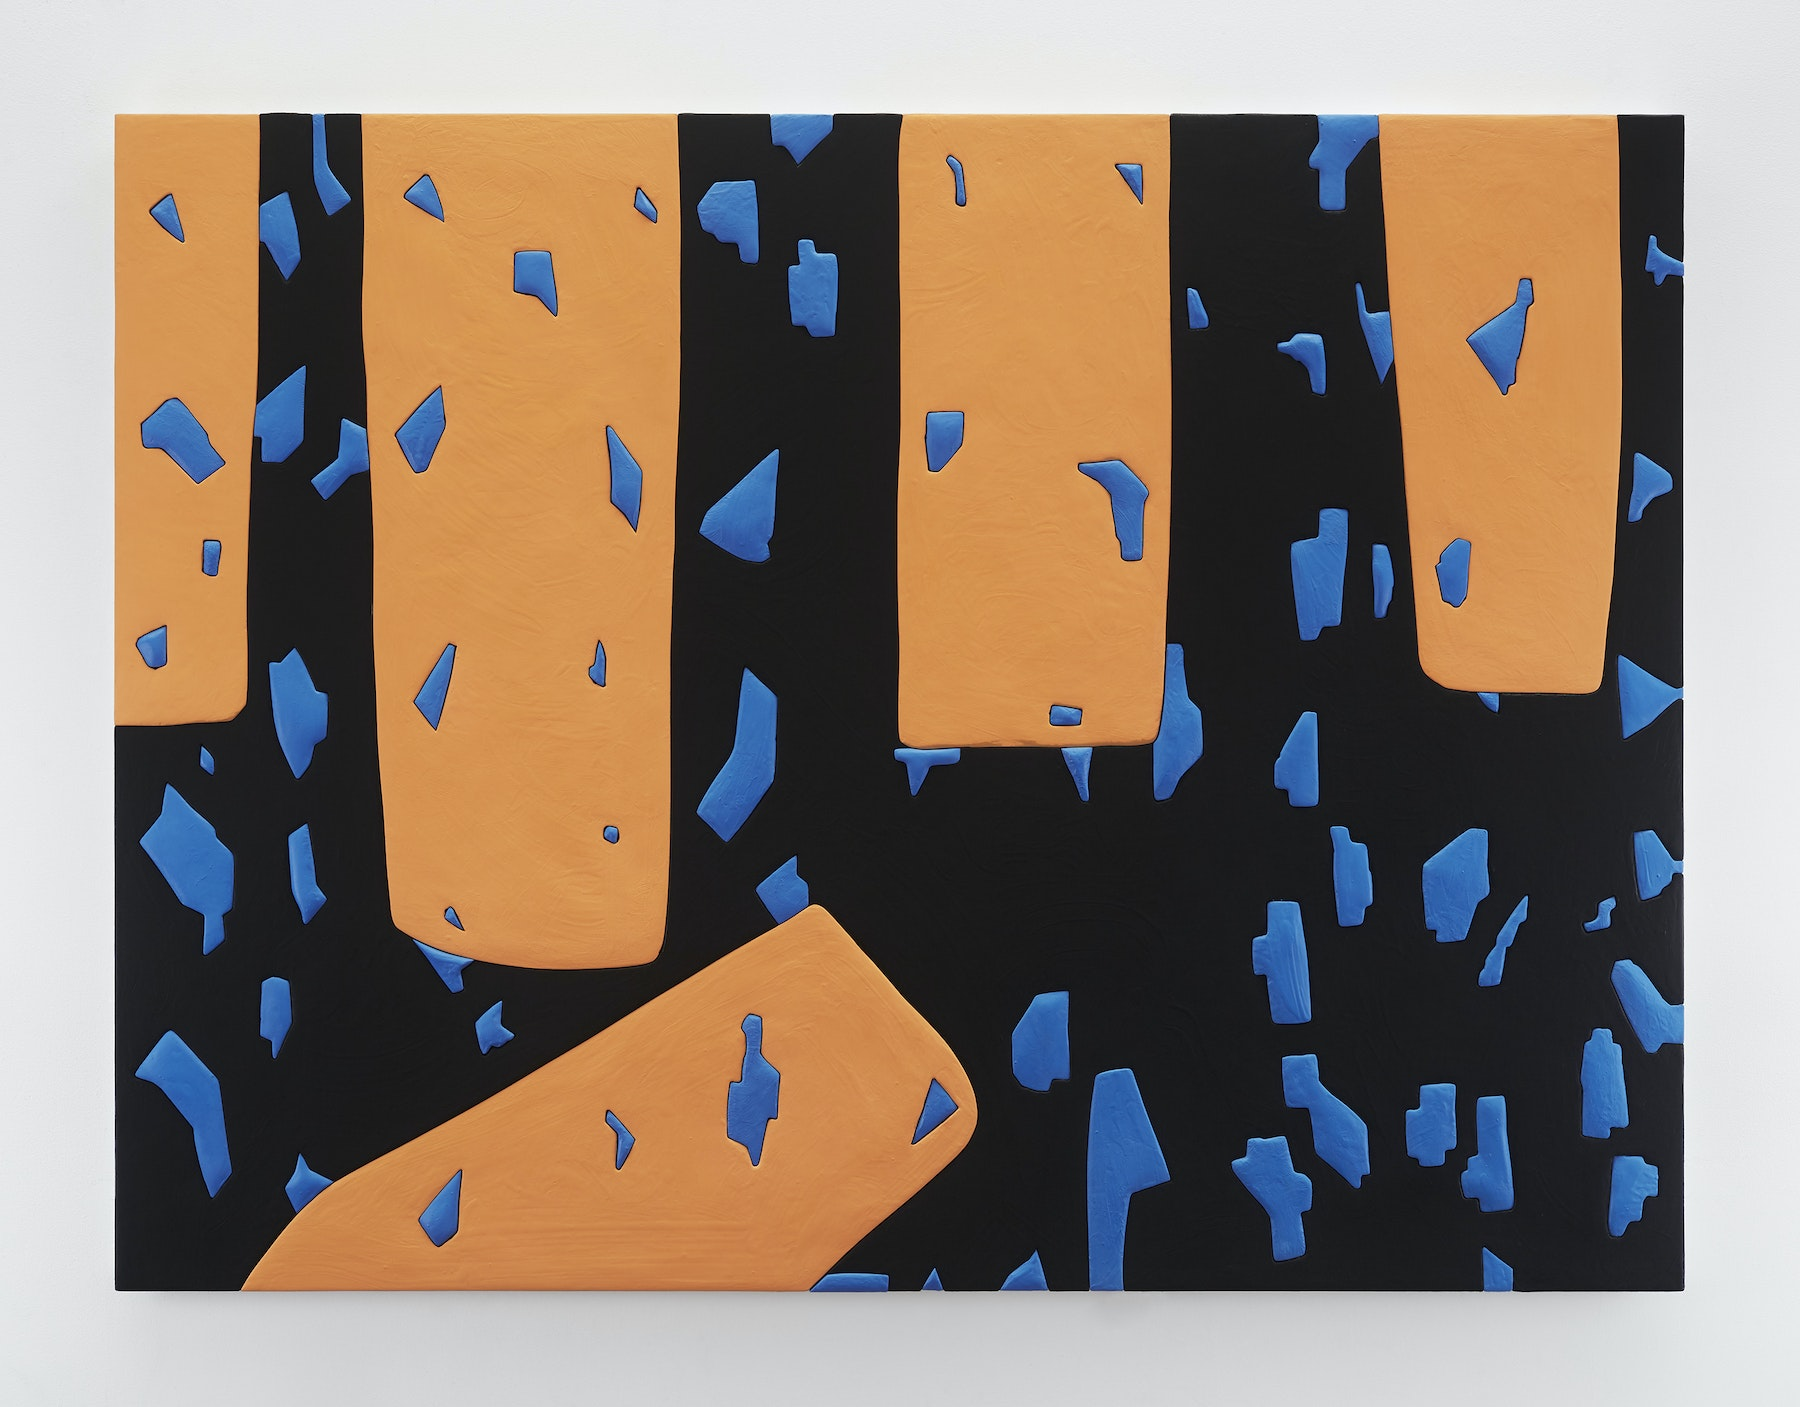 """Sadie Benning """"Untitled 8,"""" 2019 Wood, aqua resin, casein, and acrylic gouache 53 x 71"""" [HxW] (134.62 x 180.34 cm) Inventory #BEN862 Courtesy of the artist and Vielmetter Los Angeles Photocredit: Chris Austin"""